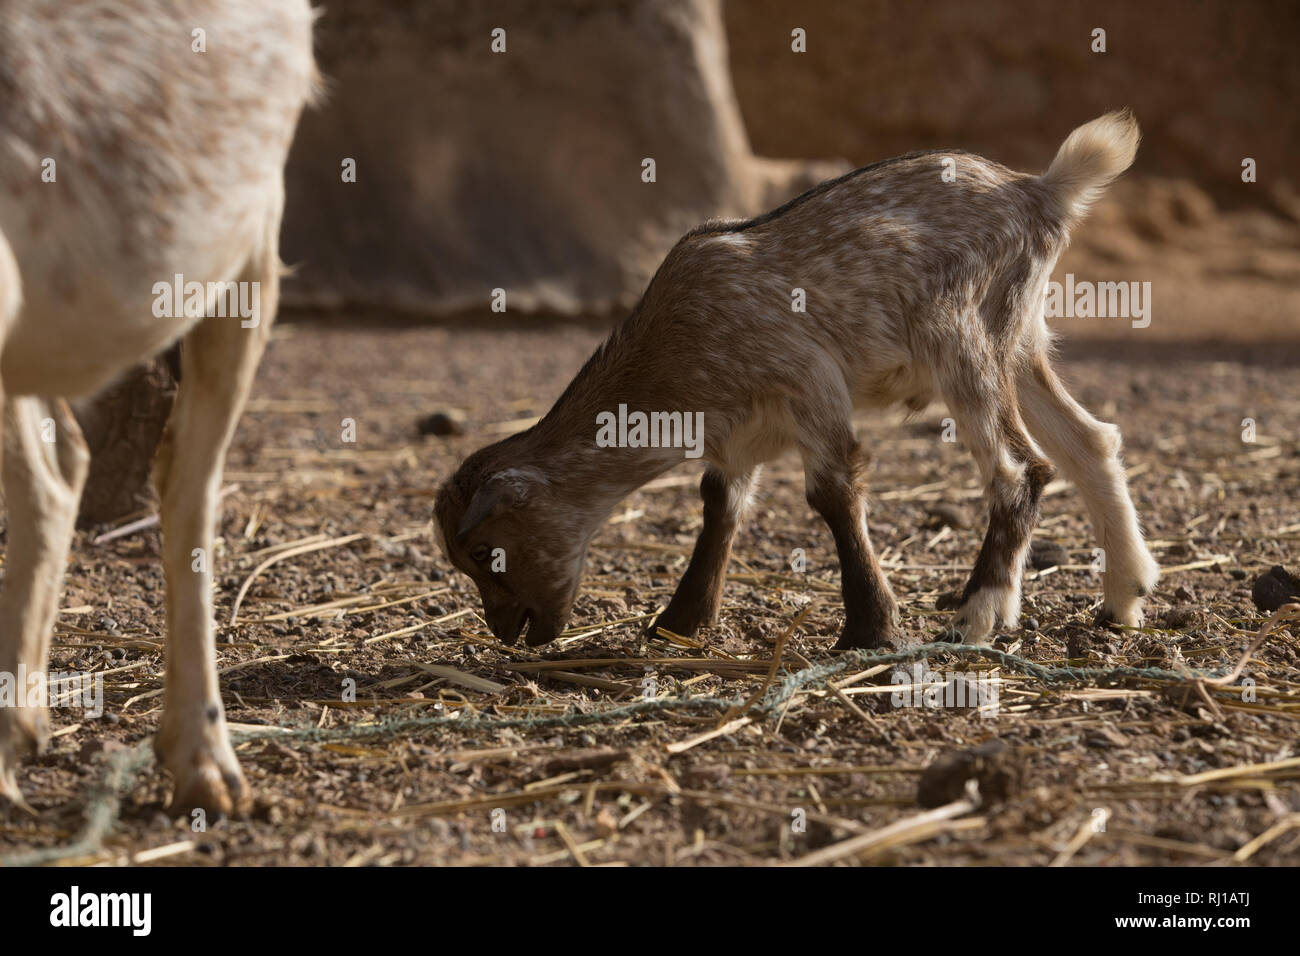 Kourono village, Yako province, Burkina Faso; A young goat kid recently born on Moussa Mande's farm. He is a Tree Aid goat project beneficiary. Stock Photo